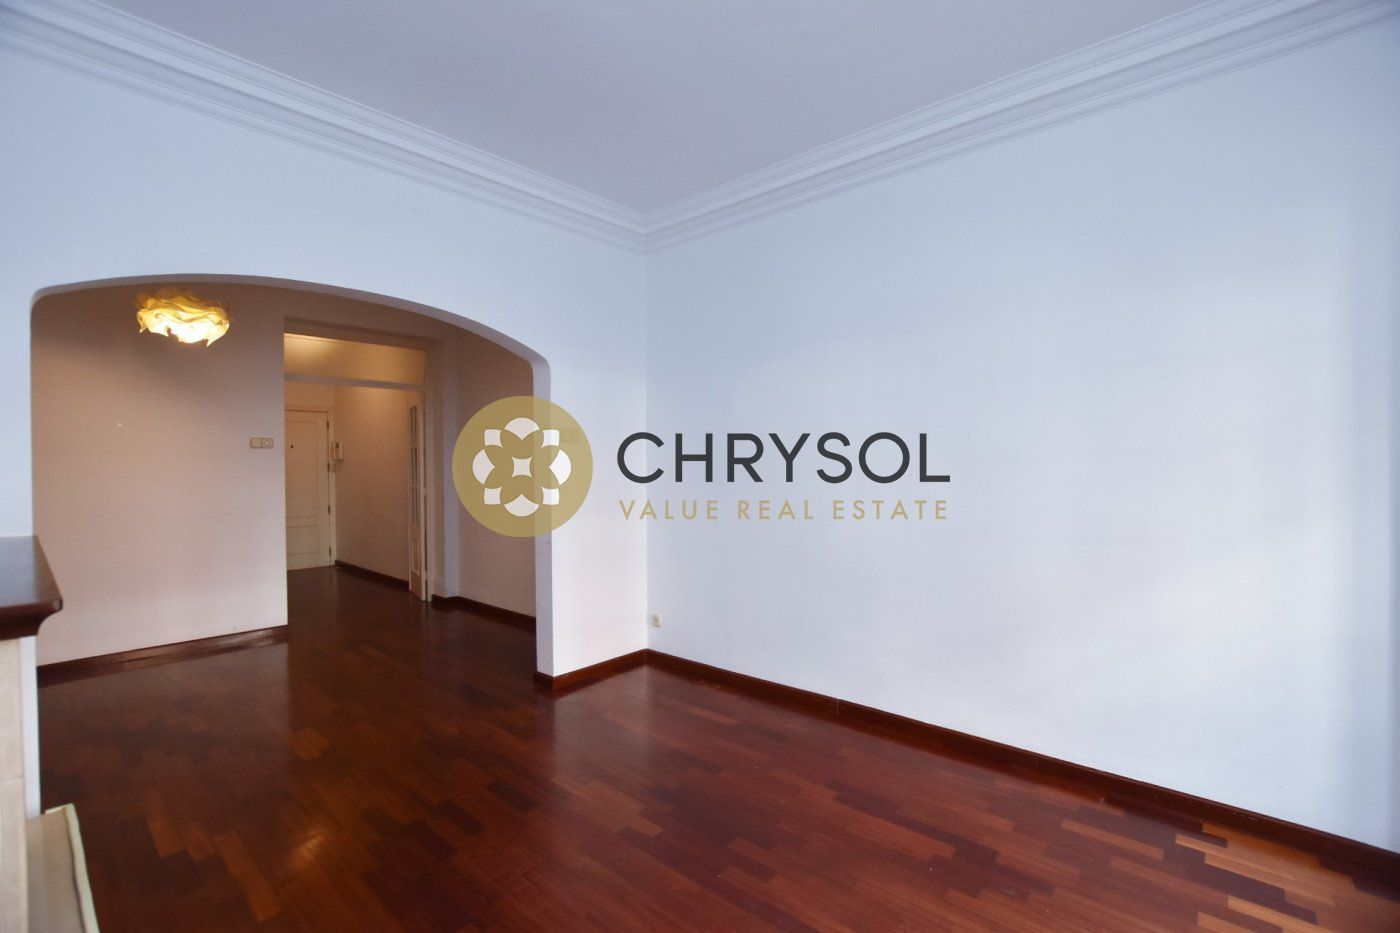 Photogallery - 2 - Chrysol Value